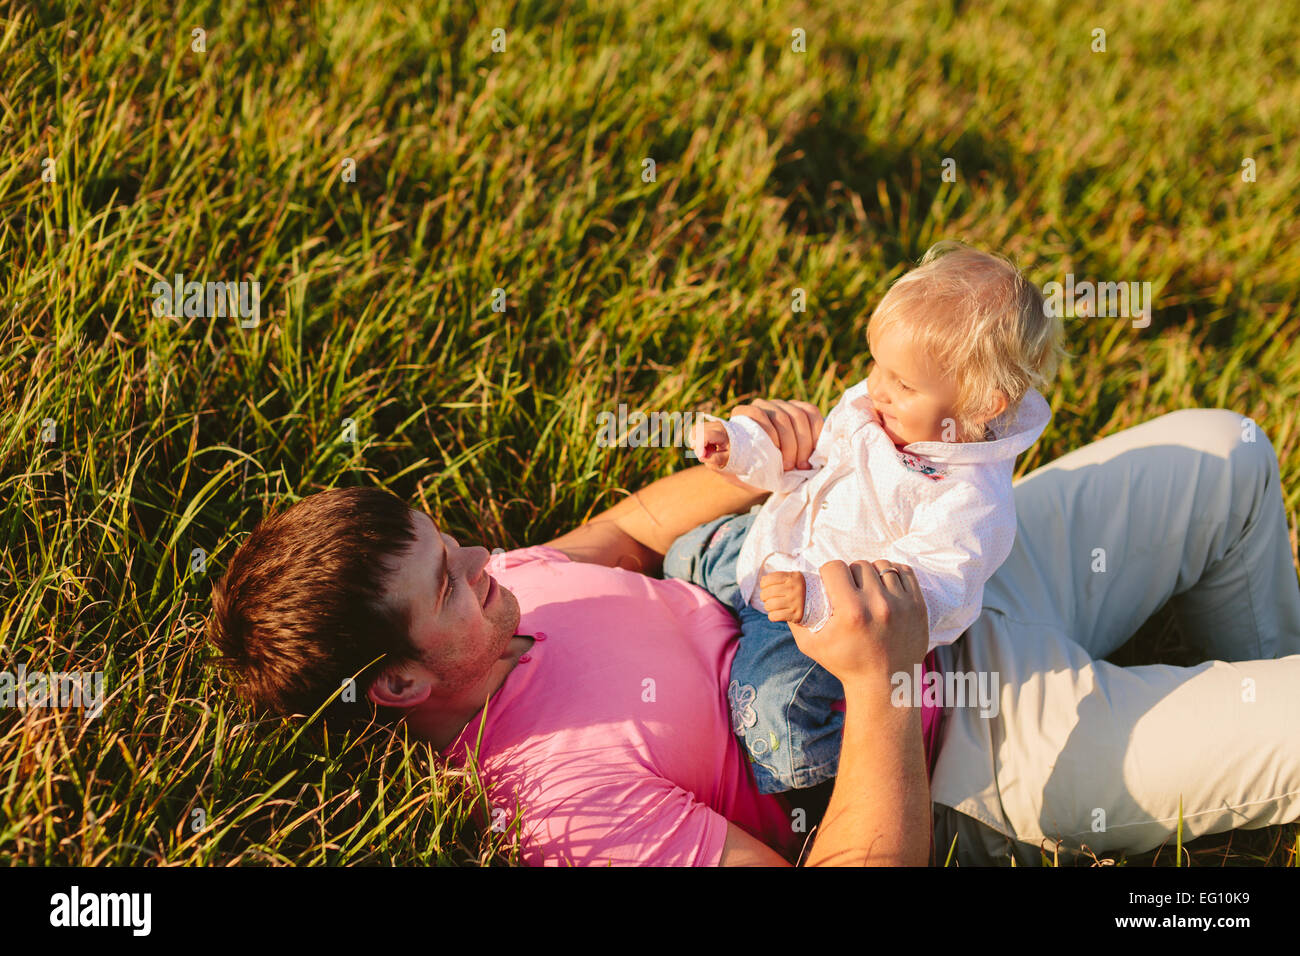 Dad and daughter - Stock Image